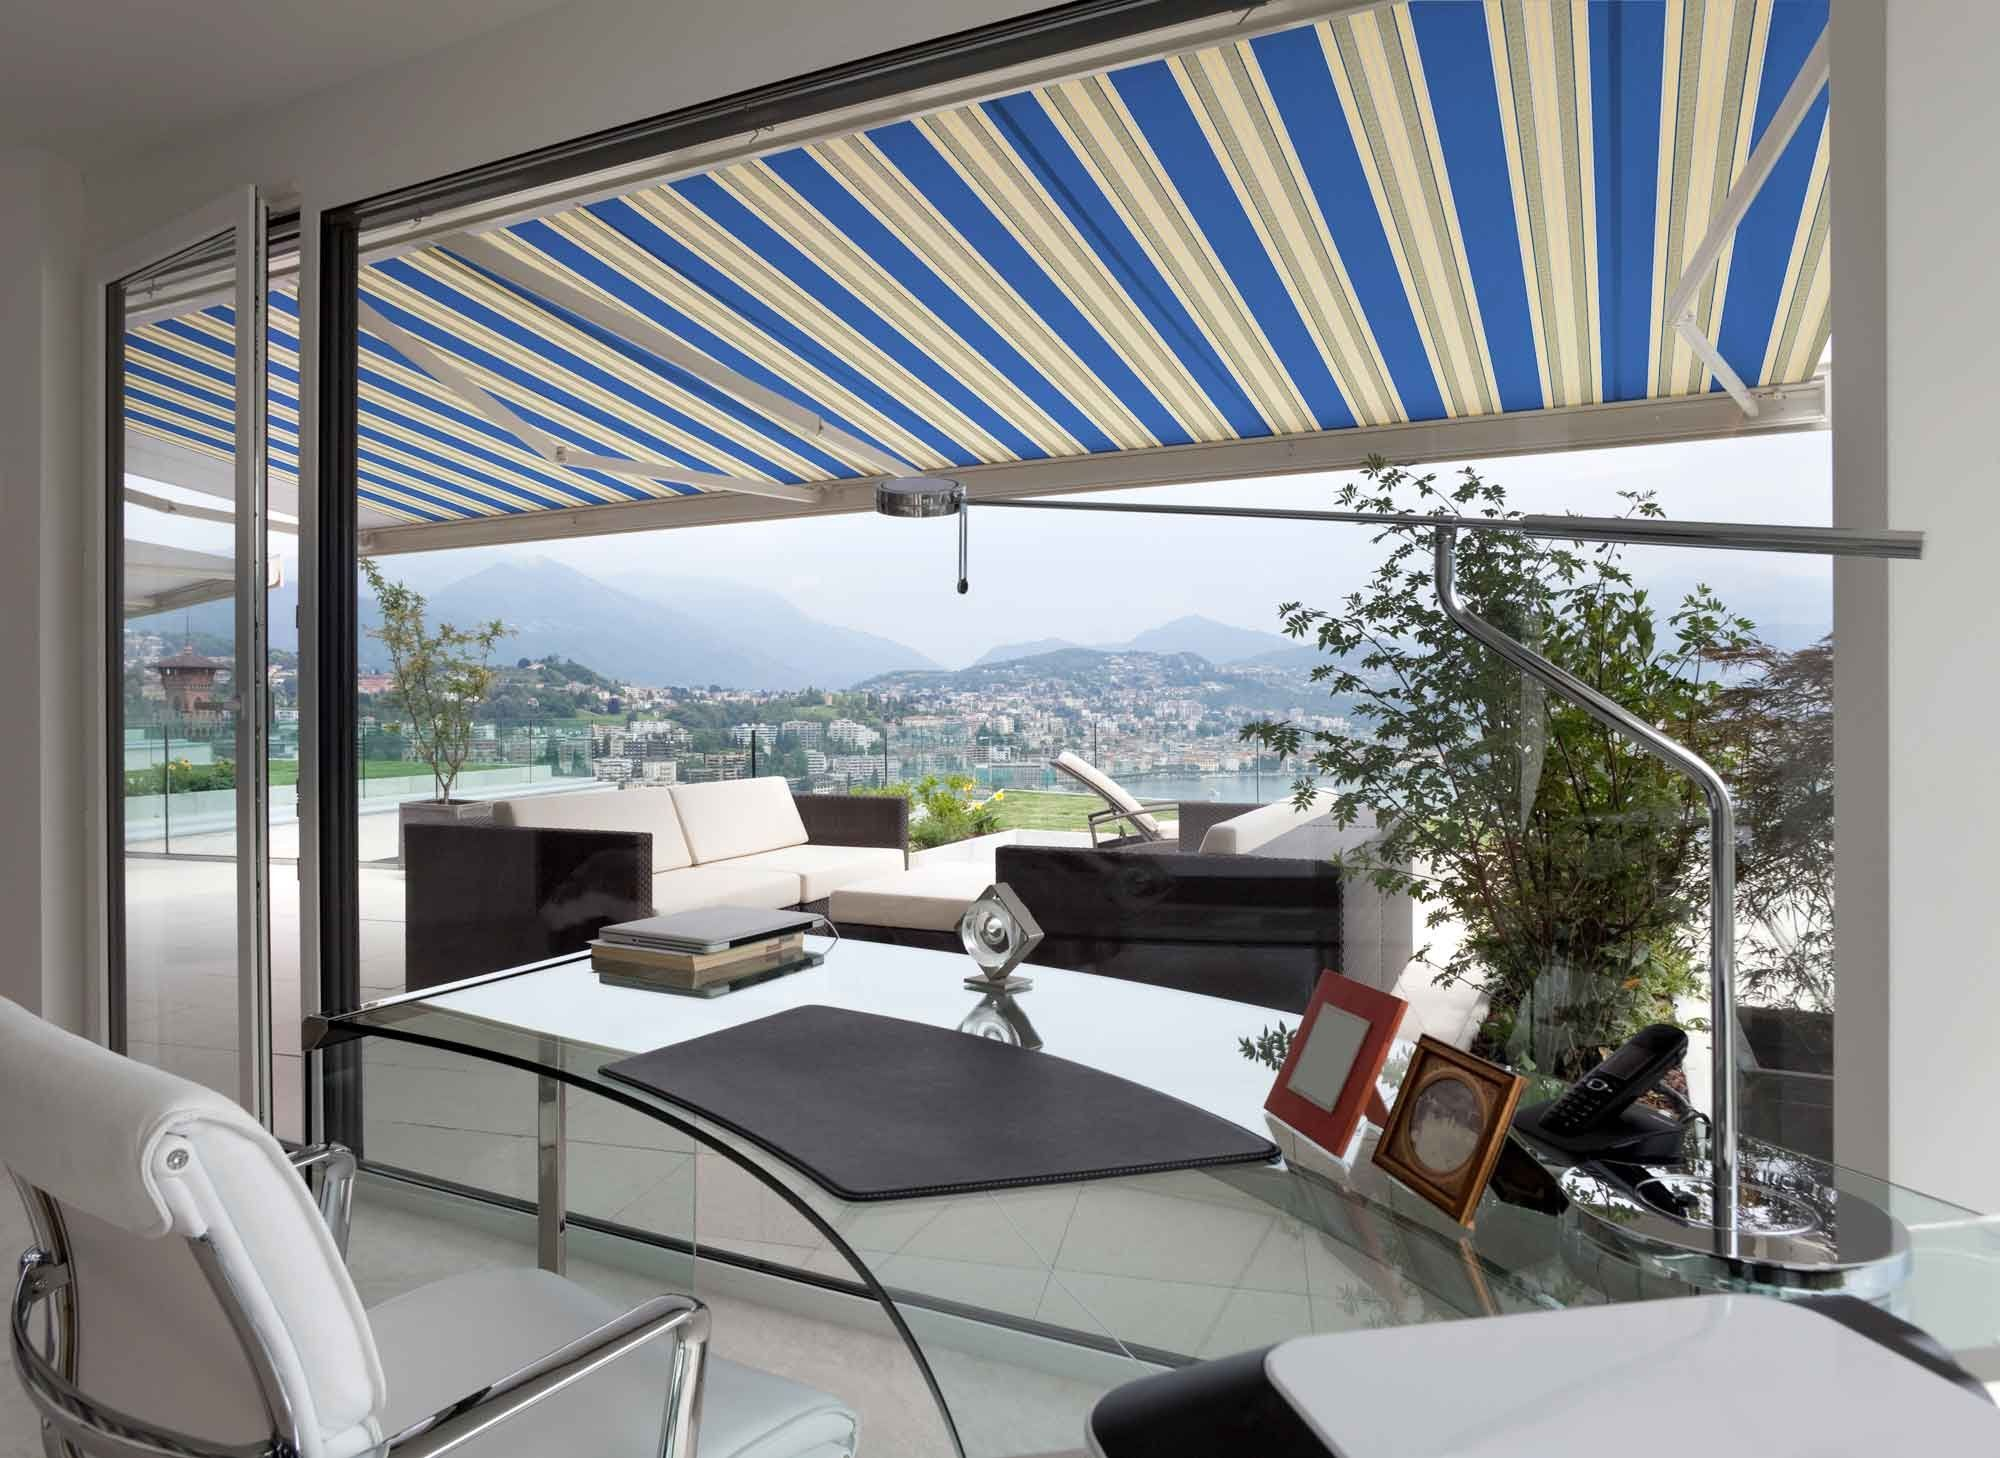 ADVANING Manual Luxury L Series 10x8 SemiCassette Top Quality Window/Door  Canopy Sun Shade Patio Retractable Awning Ocean Blue With Sand Beige  Stripes ...